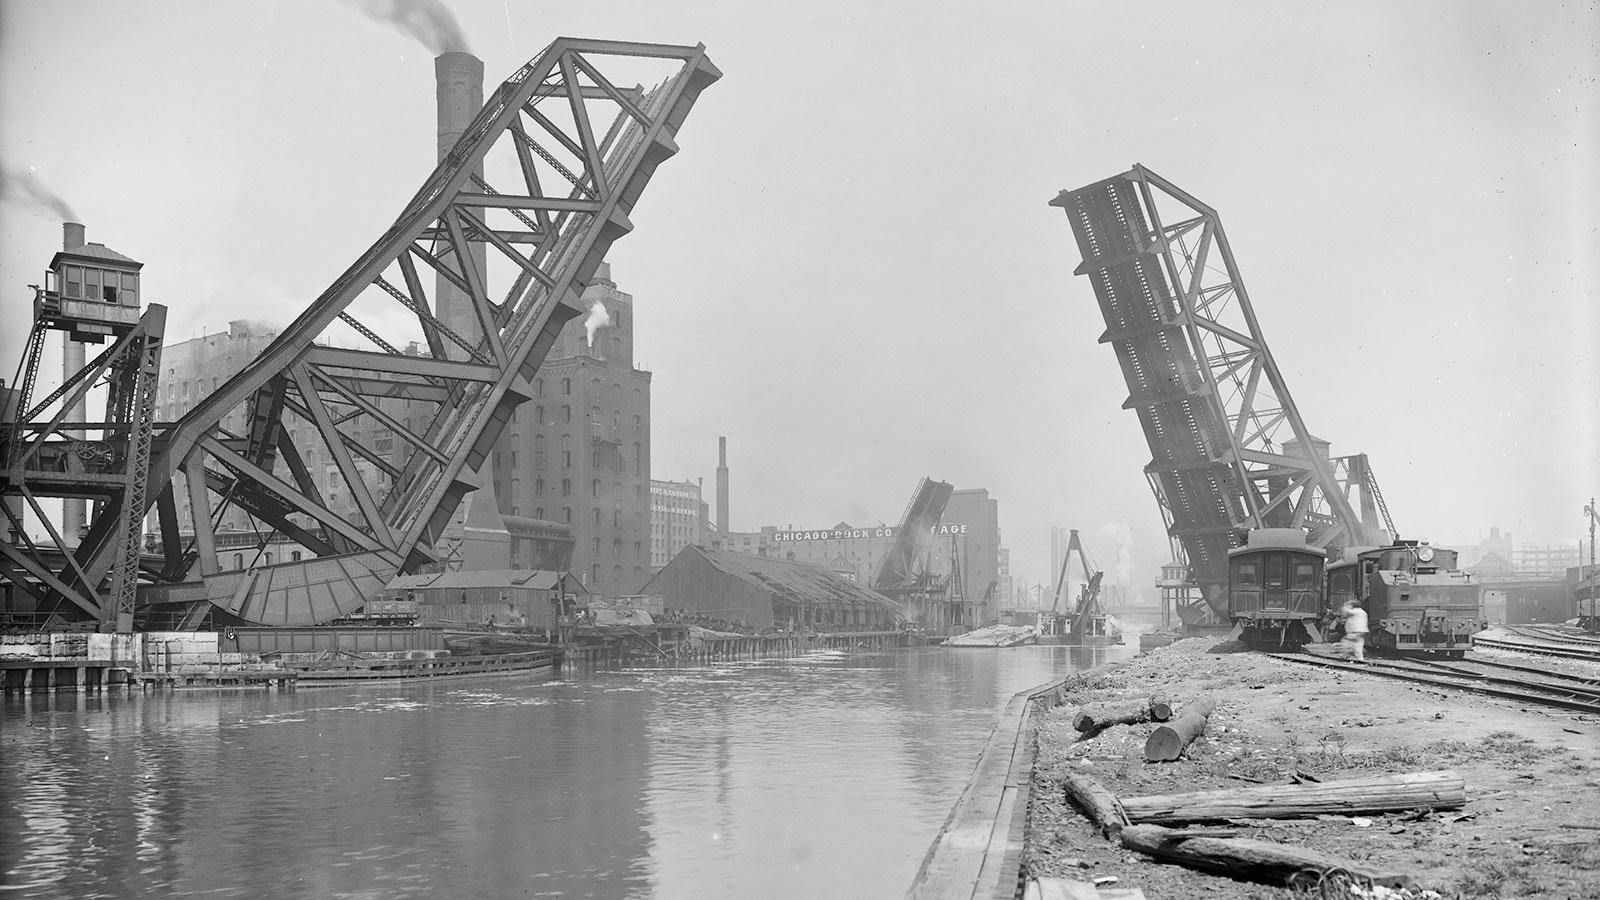 welfth St. Vascule [i.e. Bascule] Bridge, Chicago